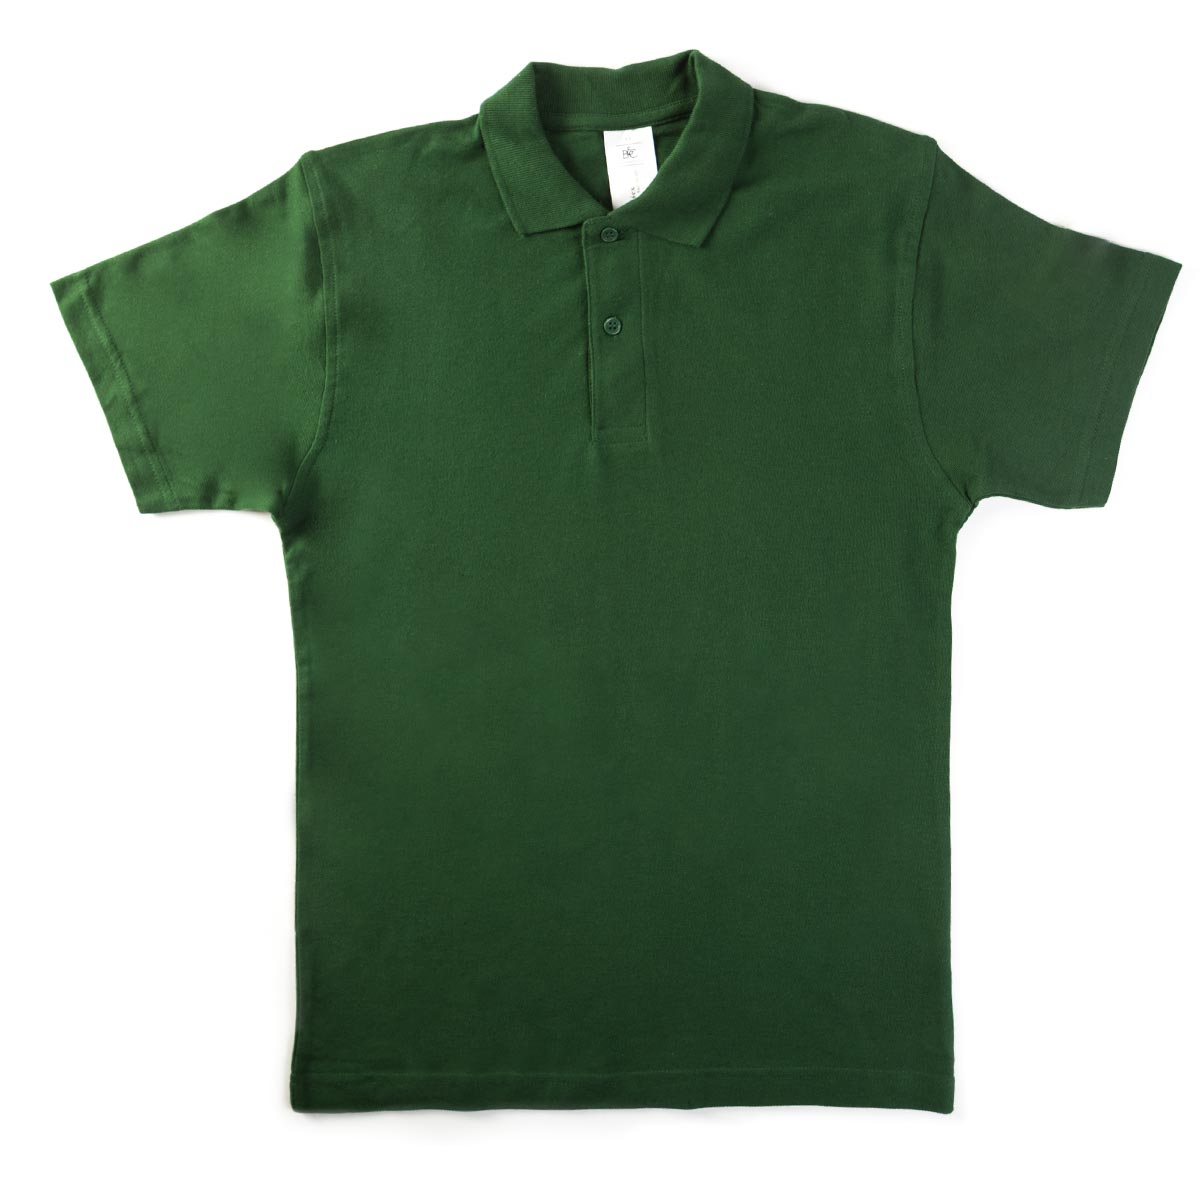 B&C Mens Polo Shirts